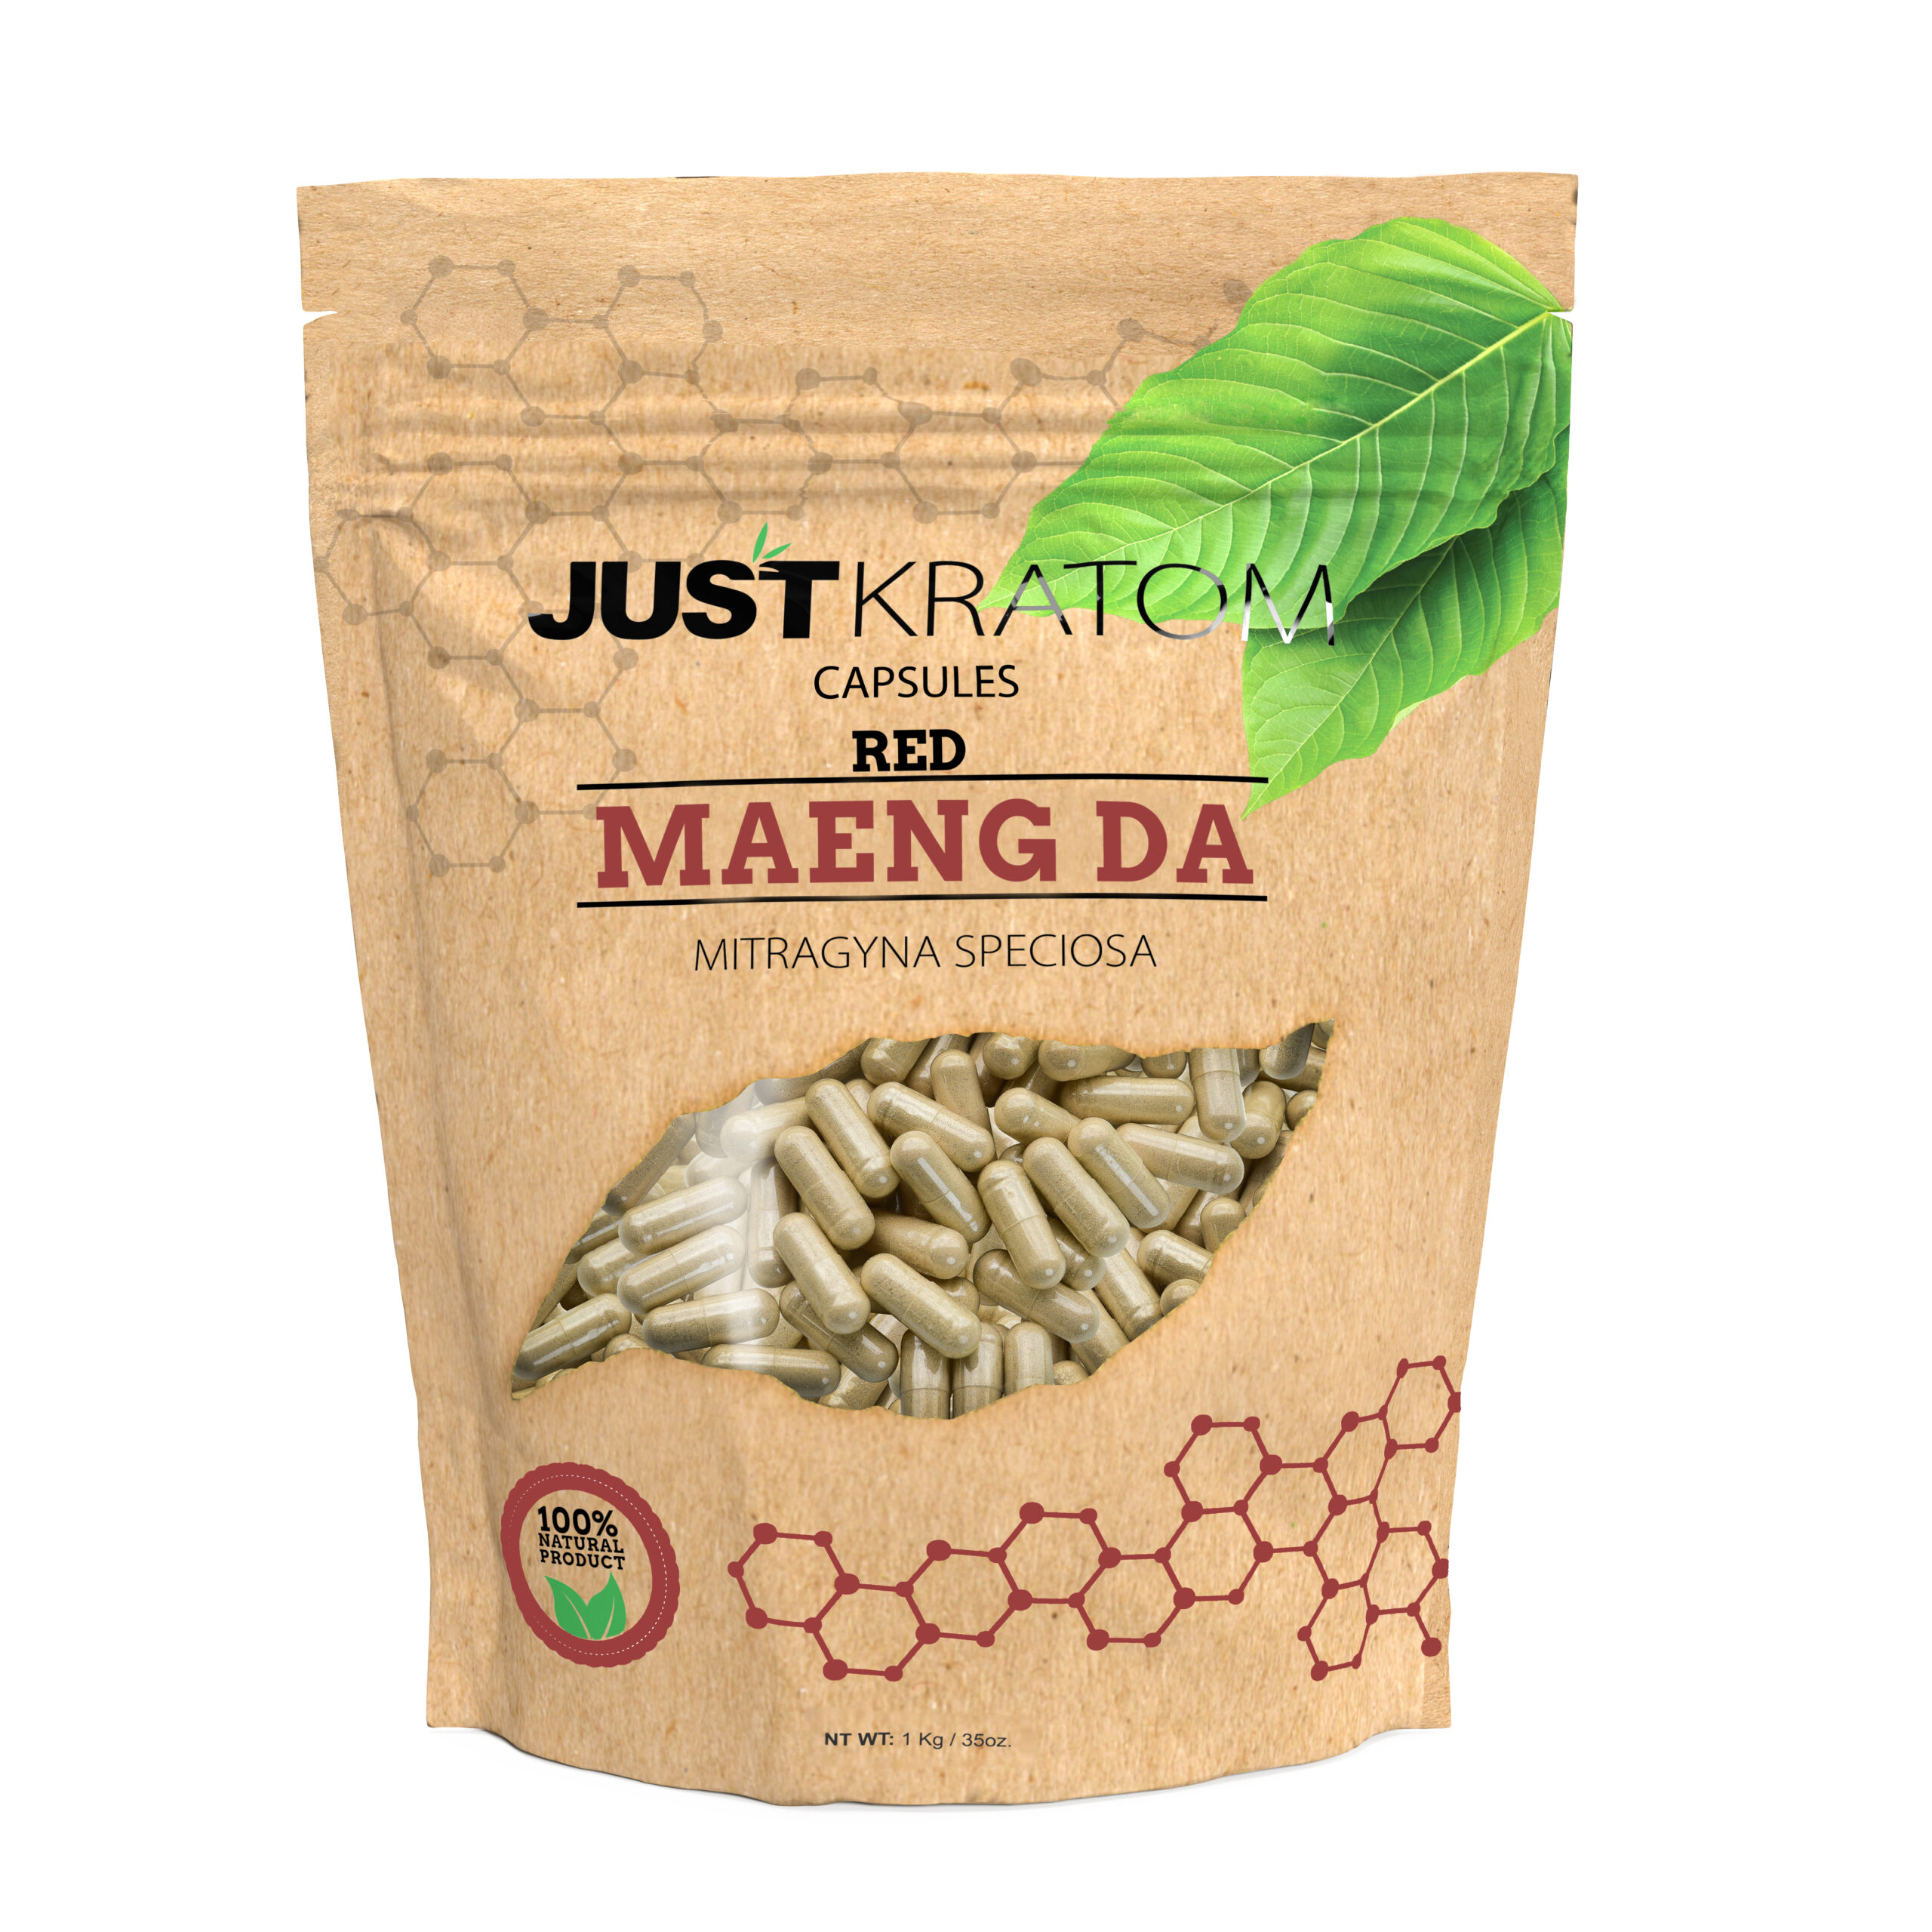 Where To Purchase Kratom Online